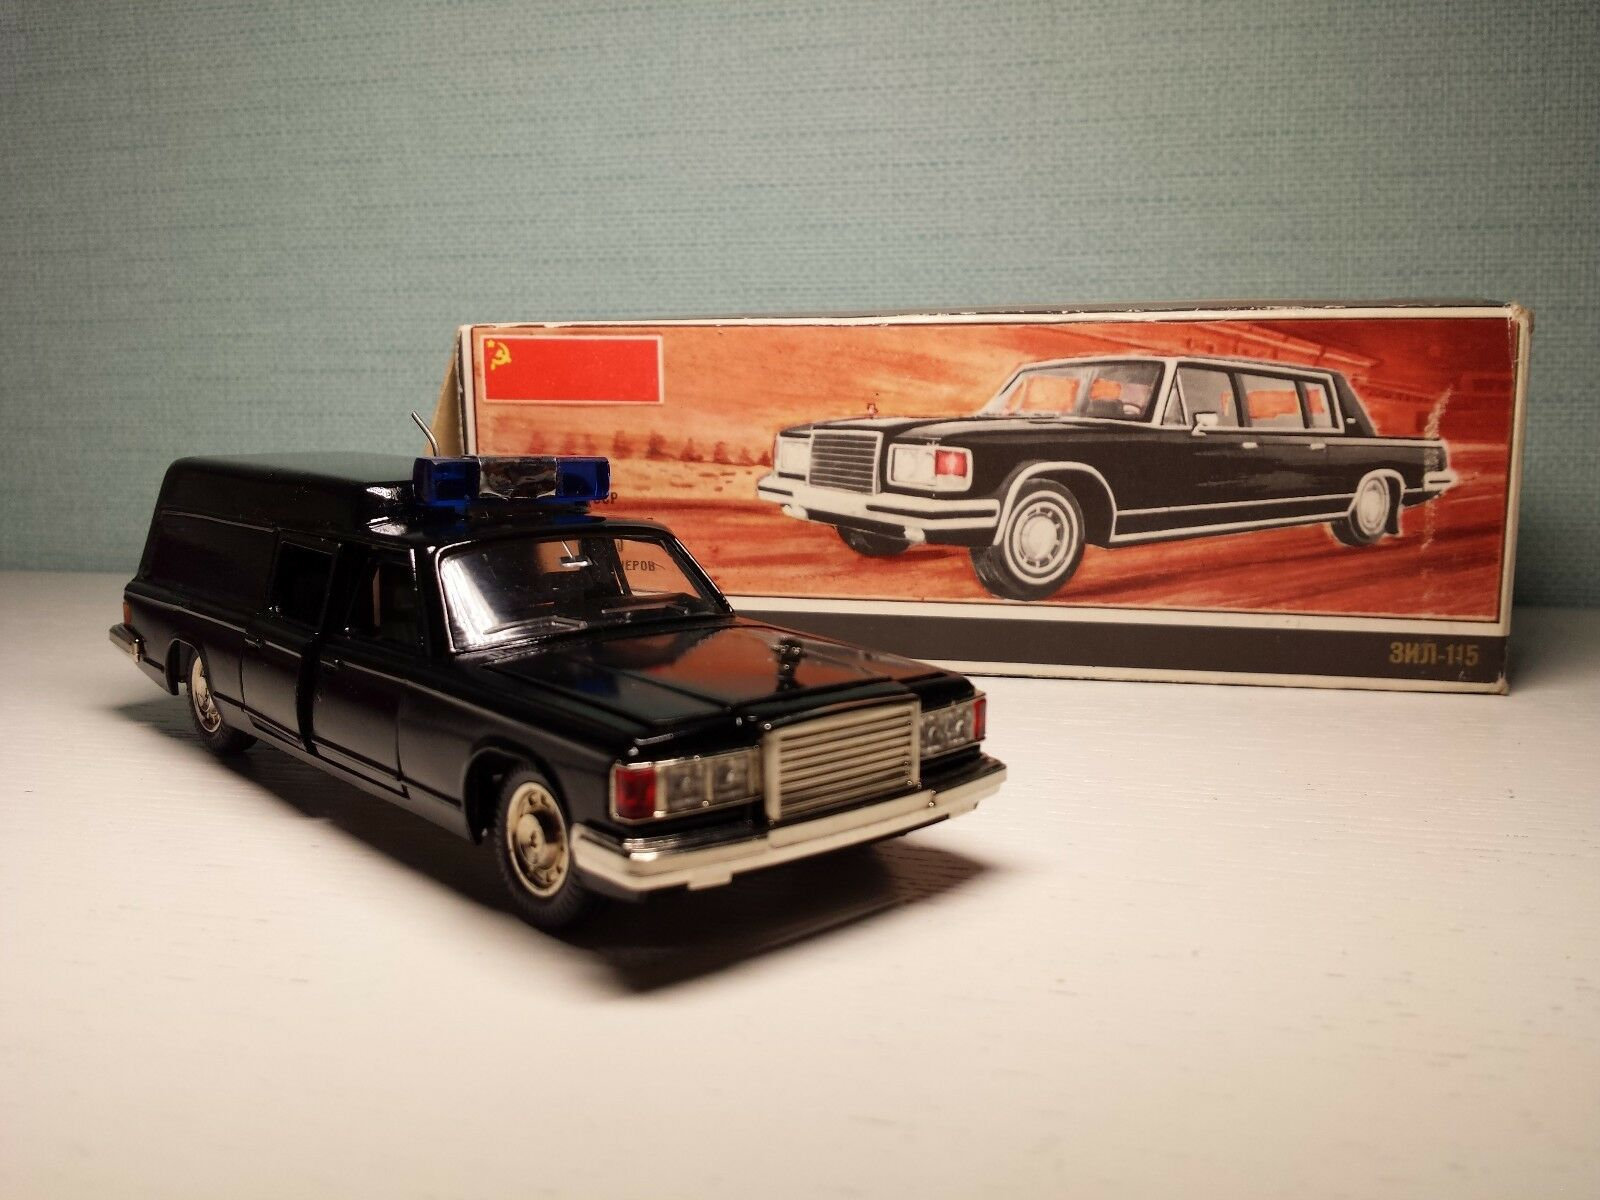 Very rare ZIL-115 1 43 Hearse Ambulance Made in USSR